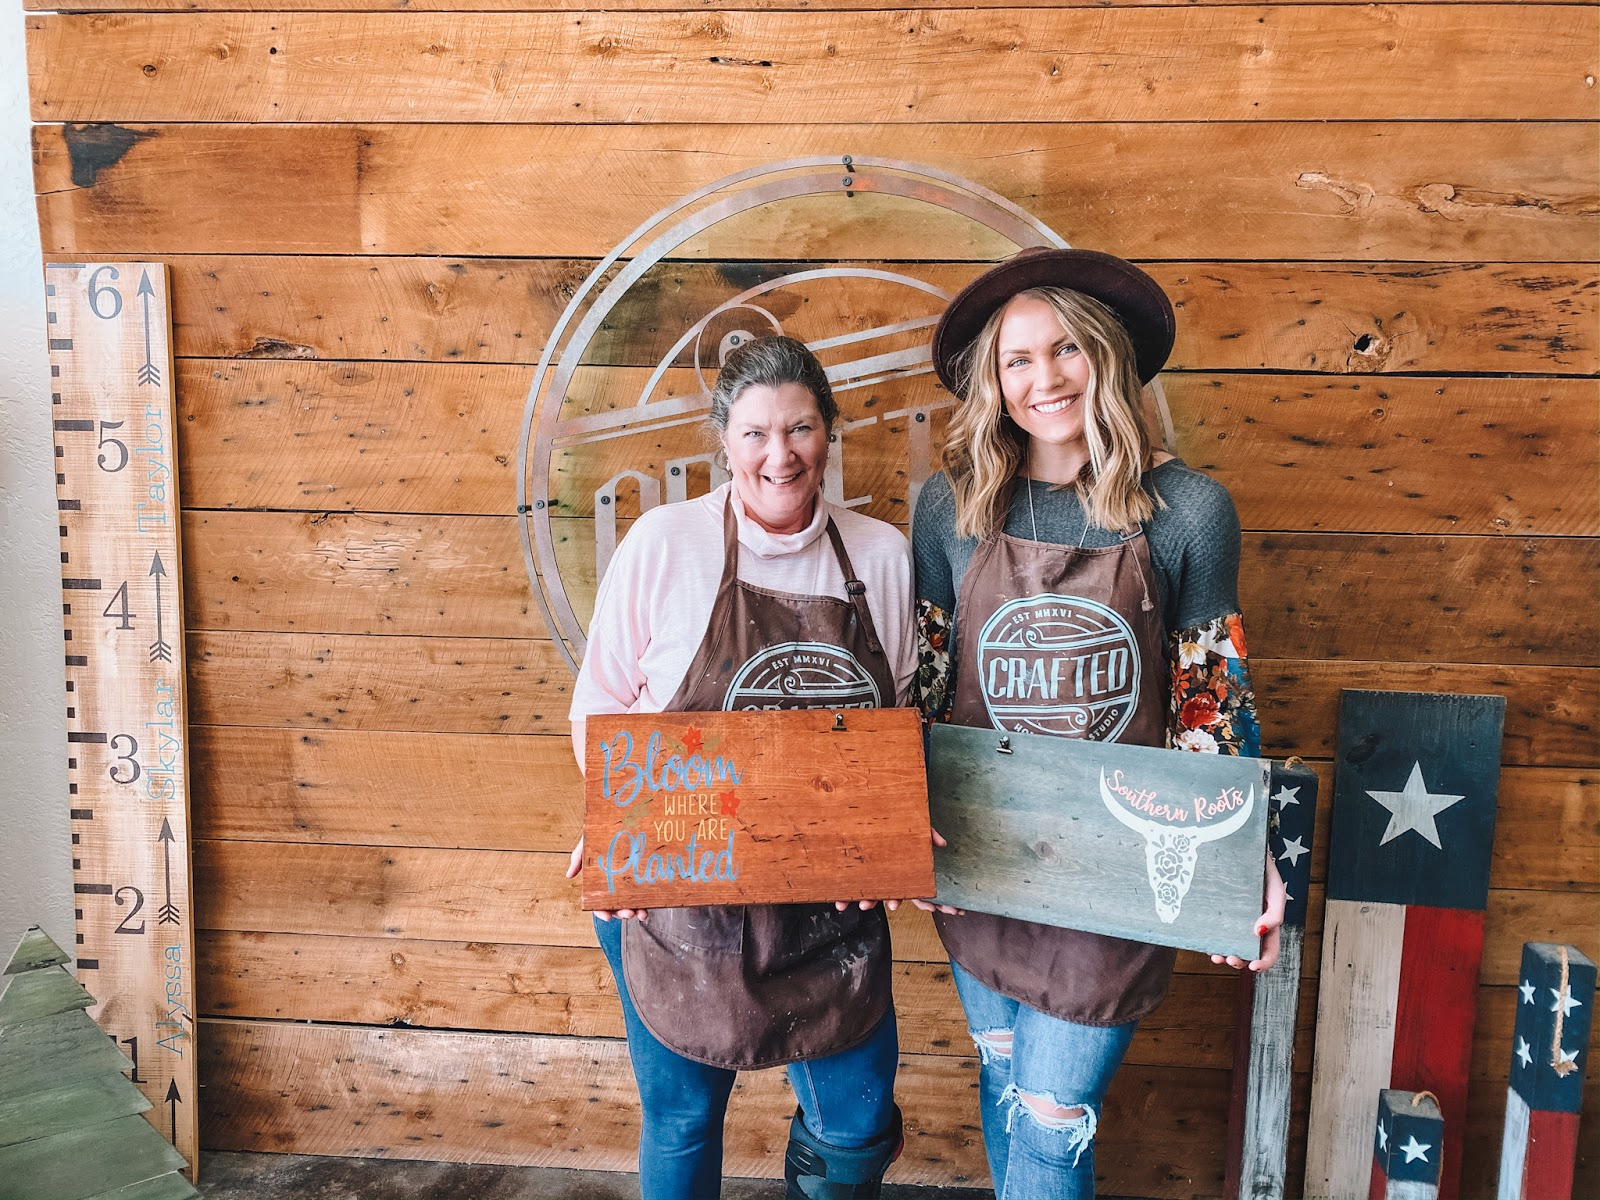 lifestyle and travel blogger Amanda Martin spent a morning at Crafted in Frisco, Texas, with her mom